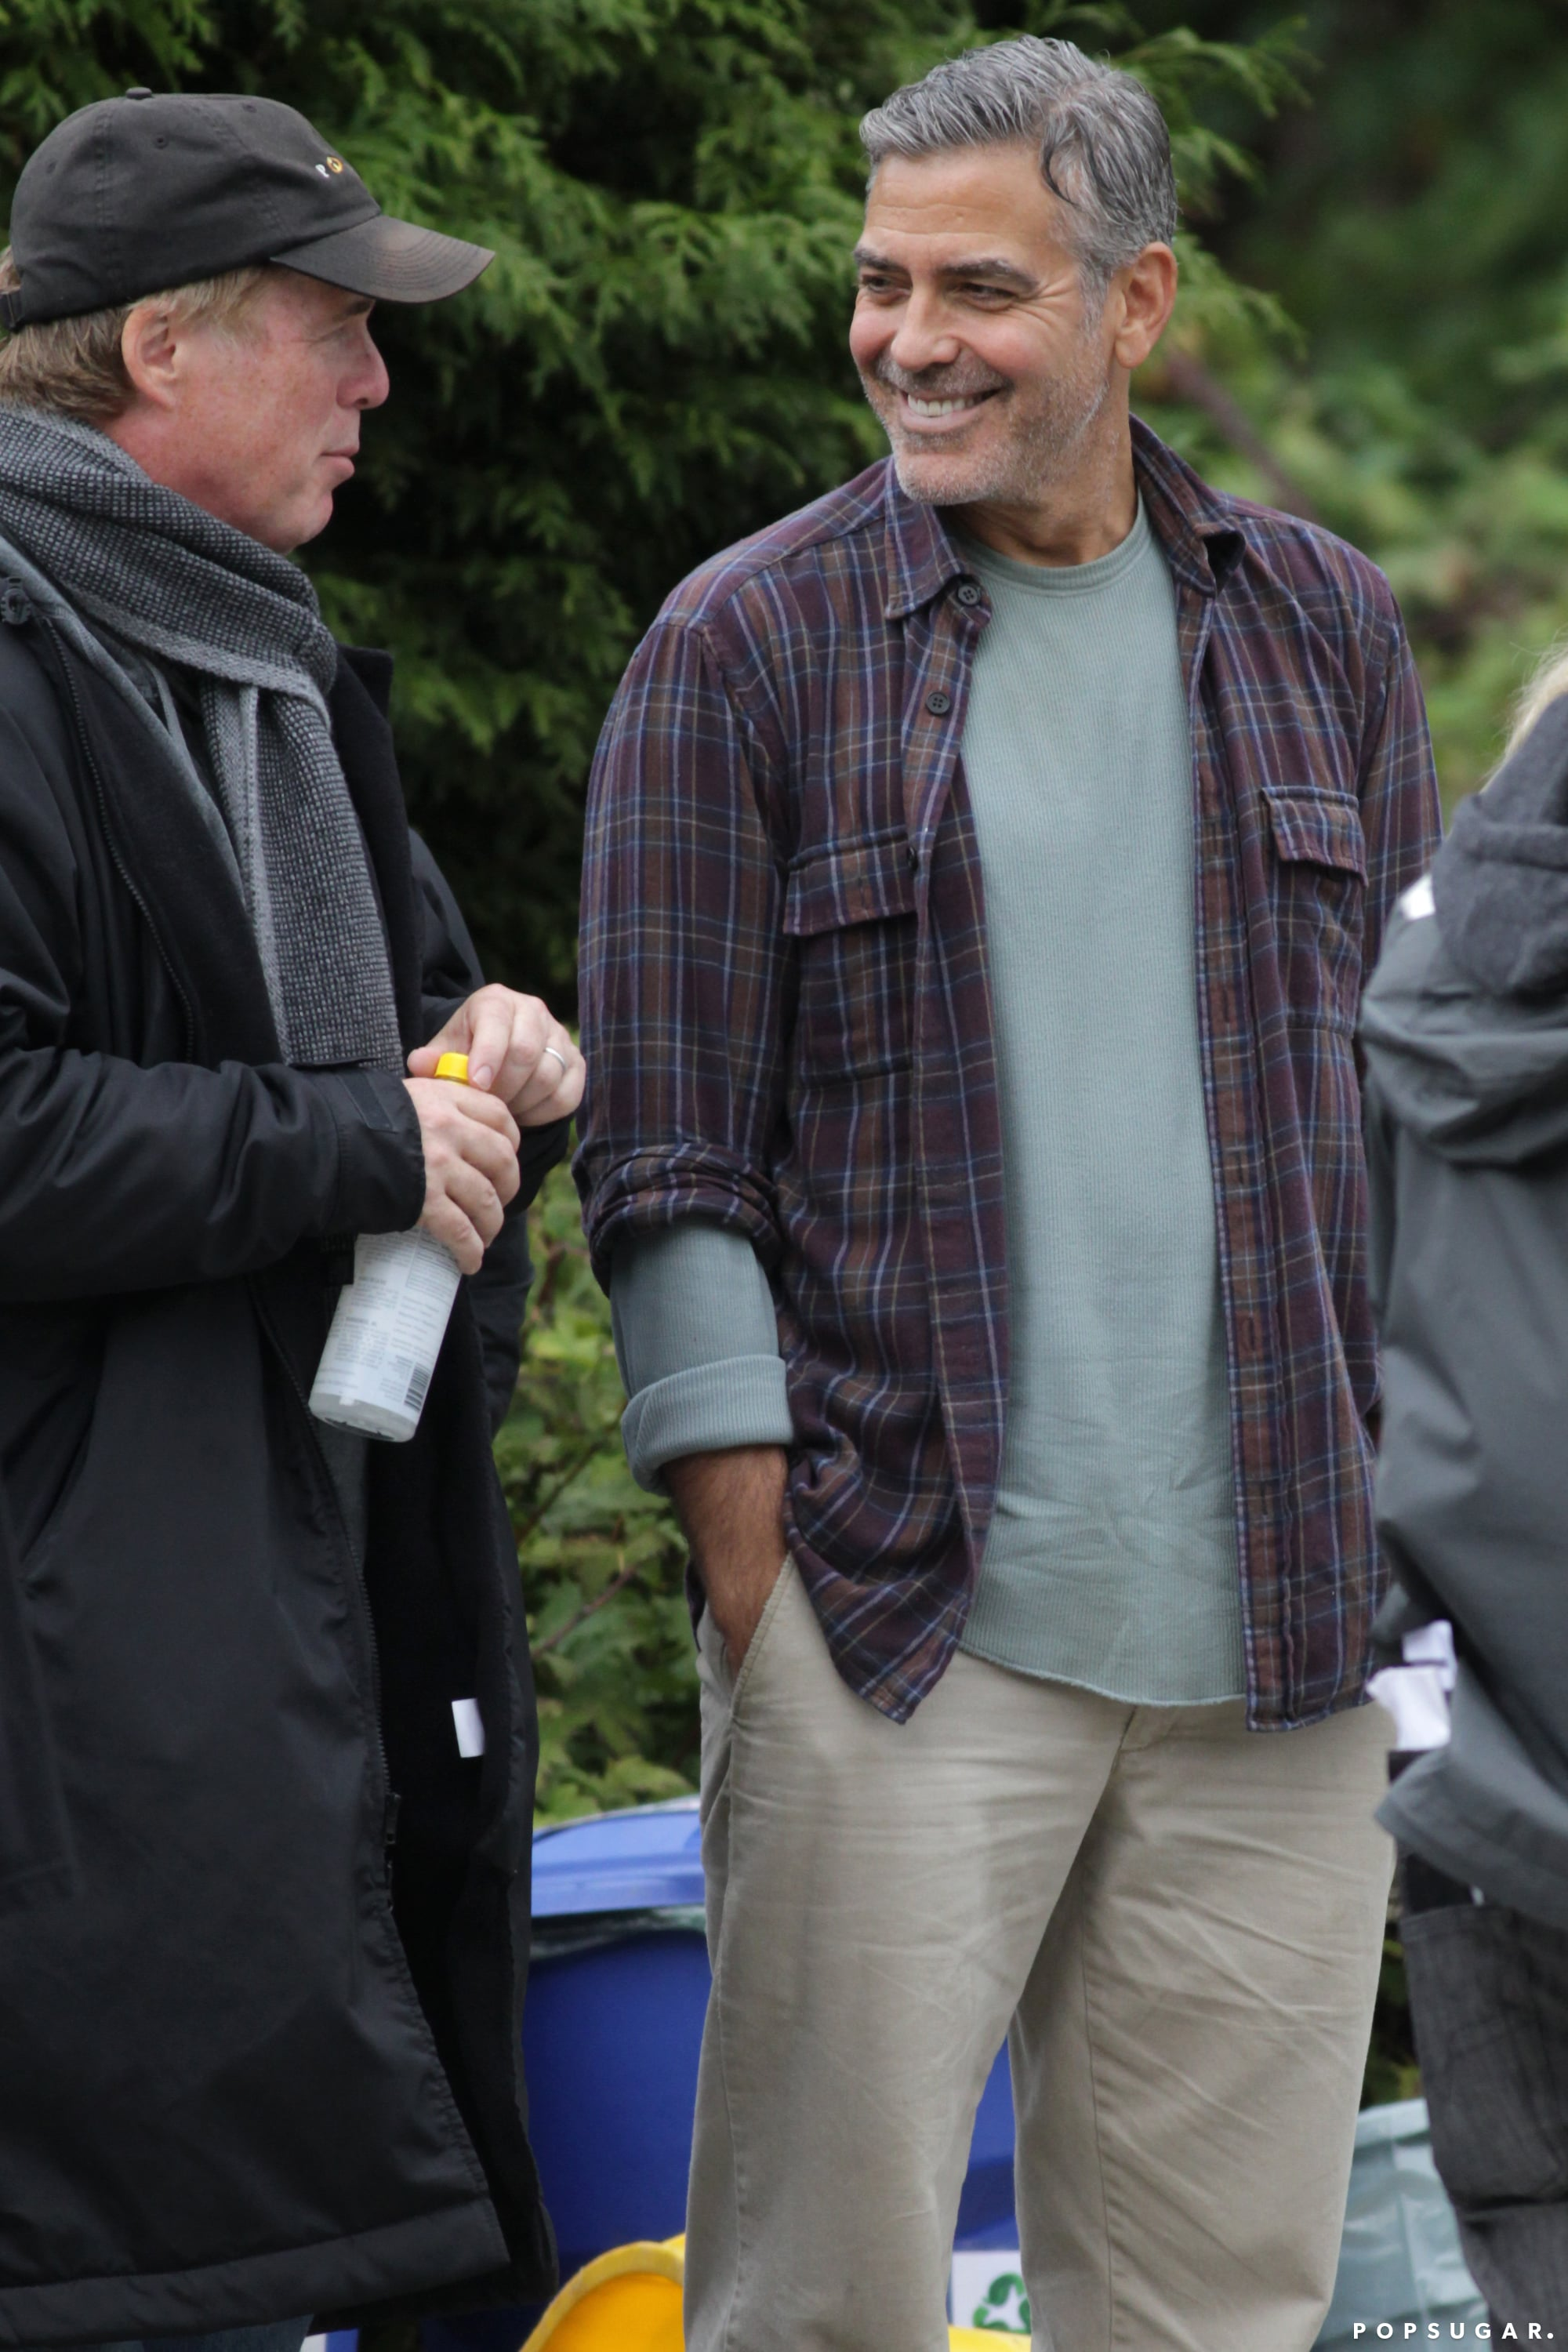 George Clooney chatted with a crew member.